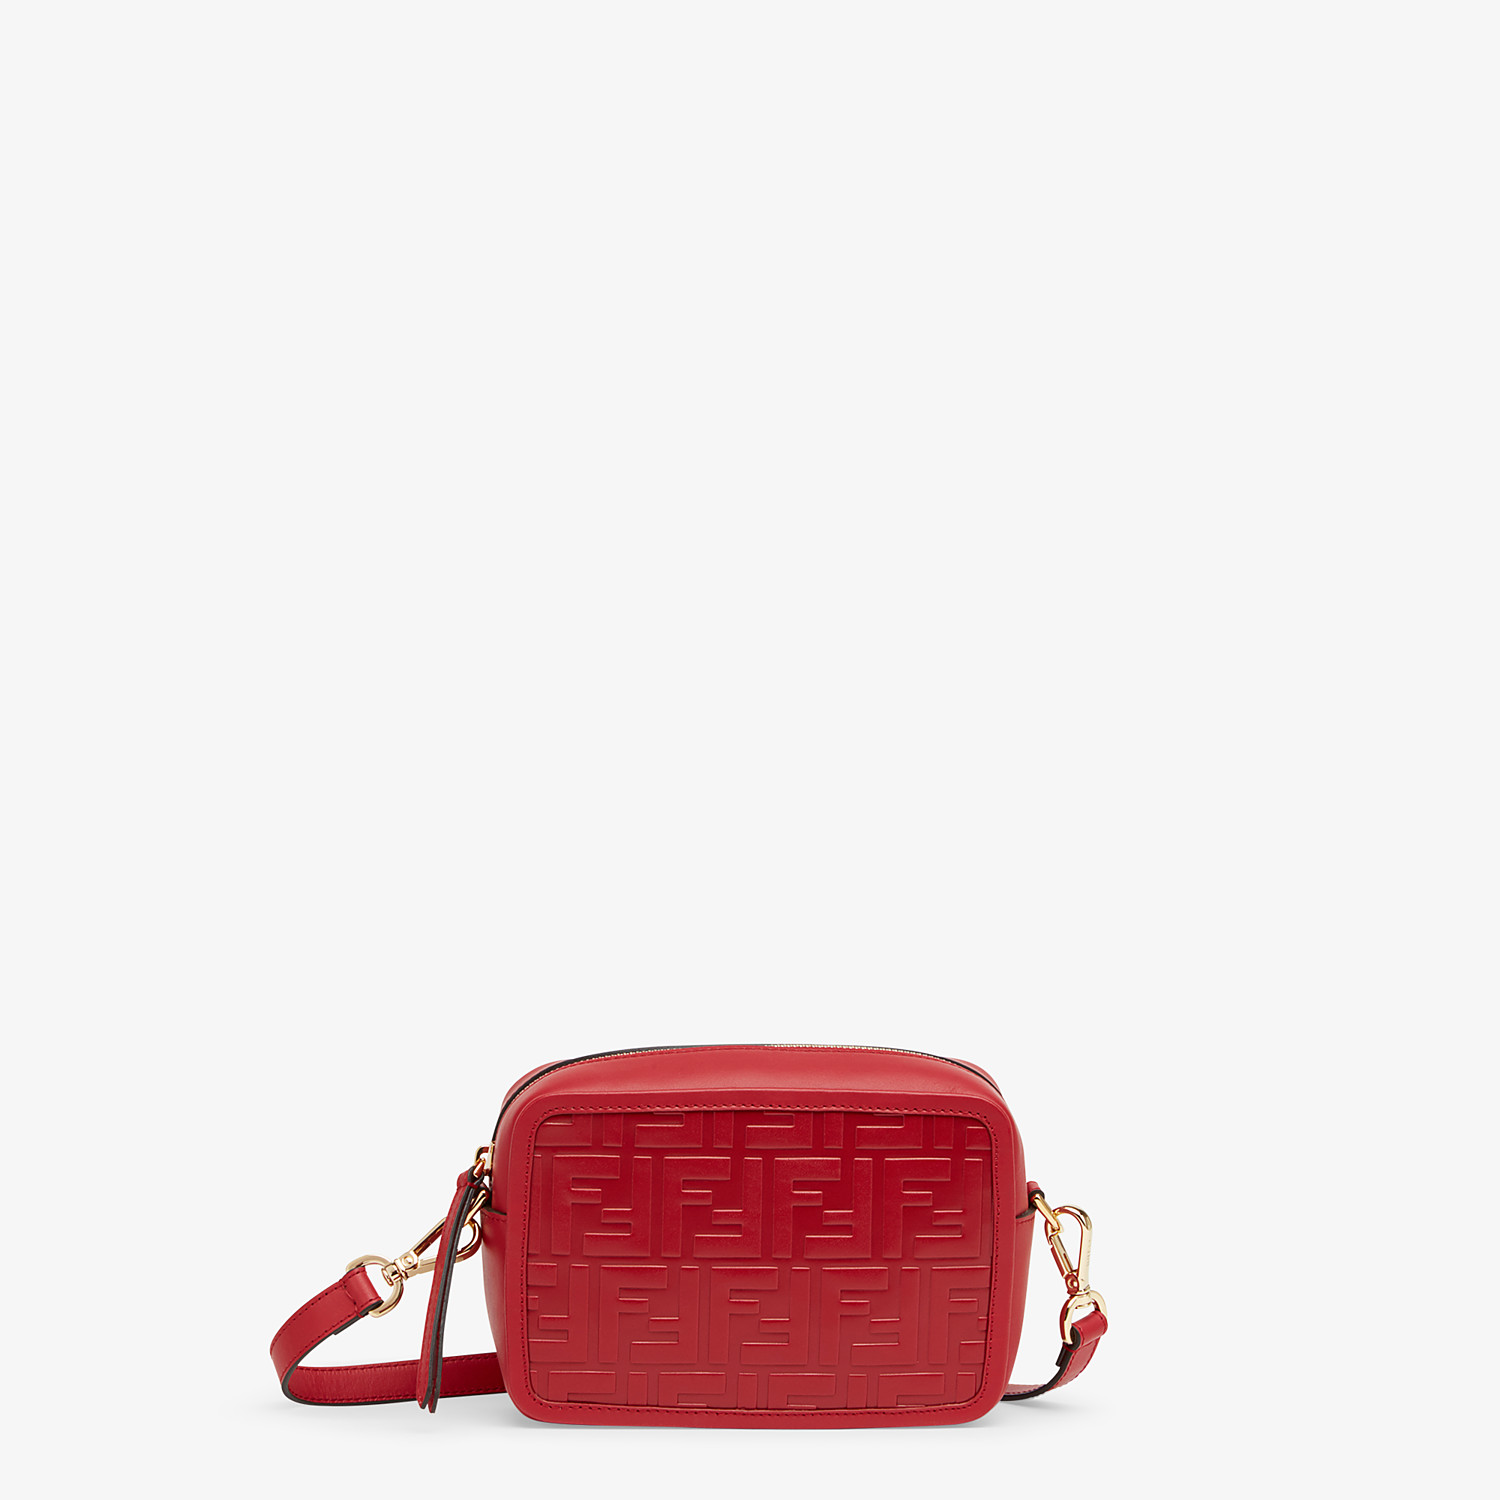 FENDI MINI CAMERA CASE - Red leather bag - view 1 detail